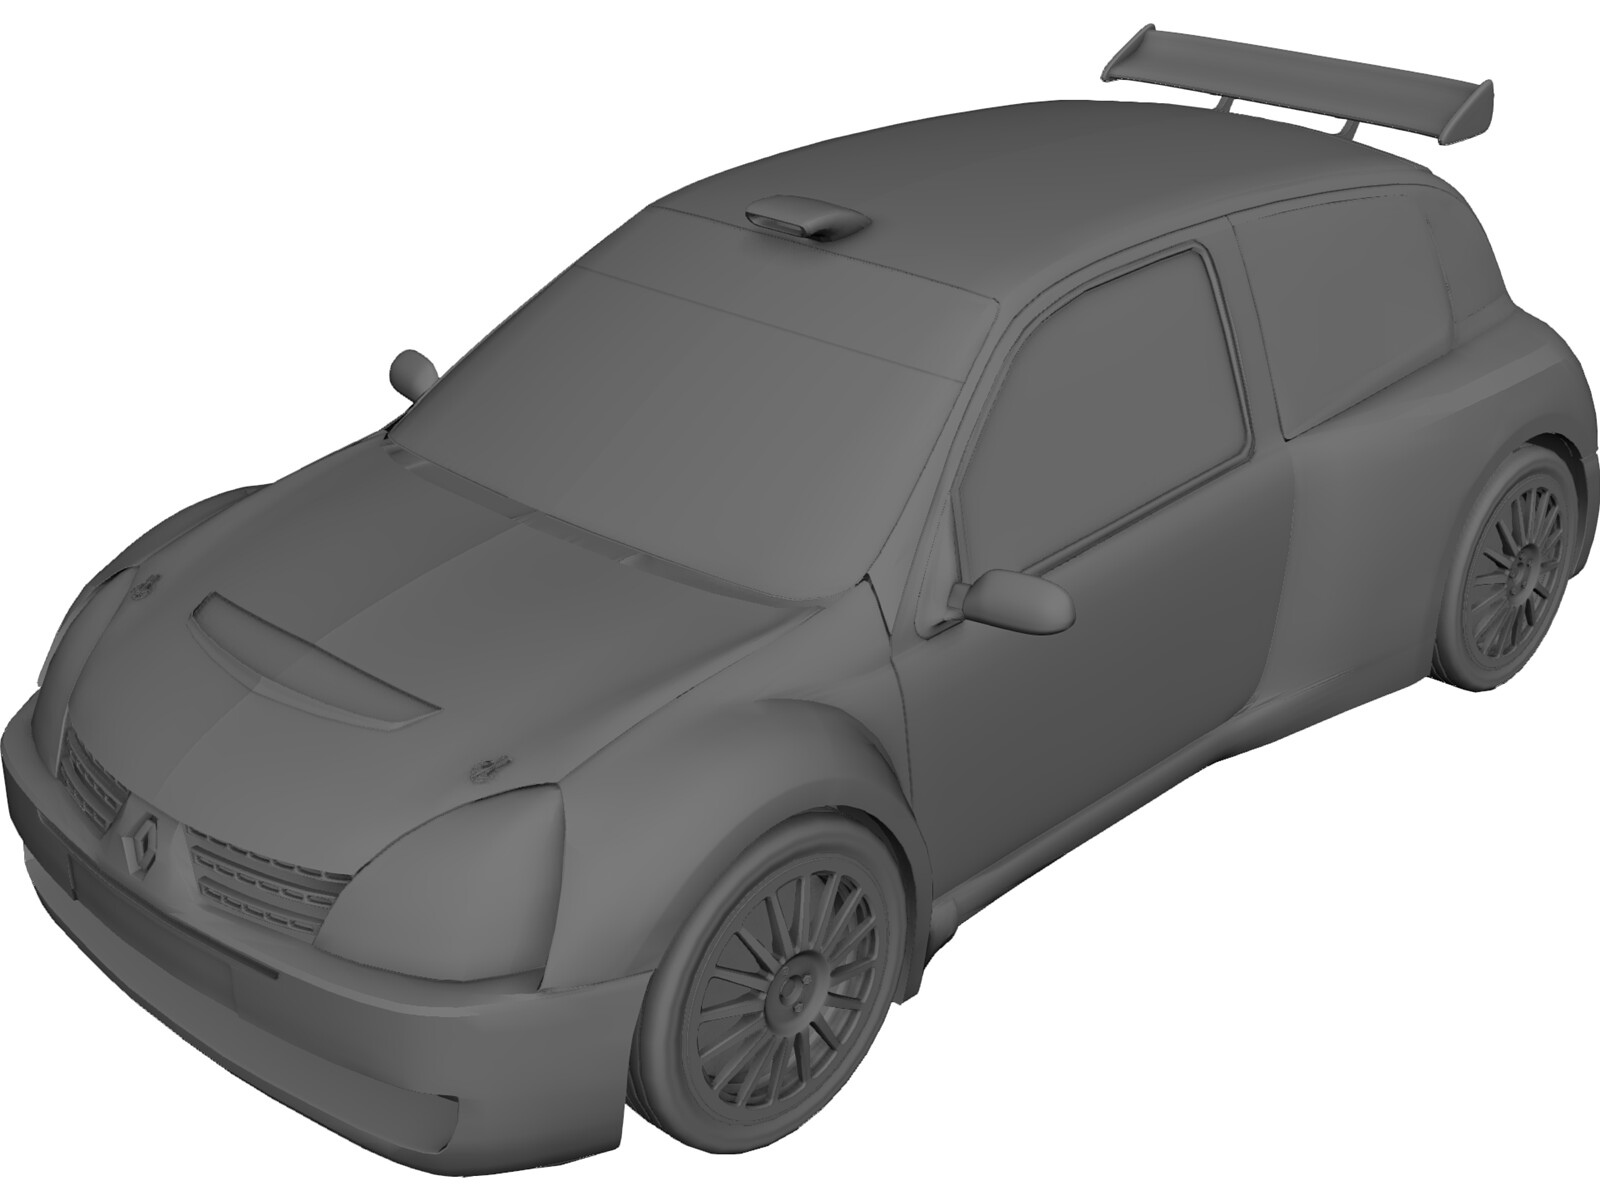 Renault Clio S1600 Rally Car 3D Model